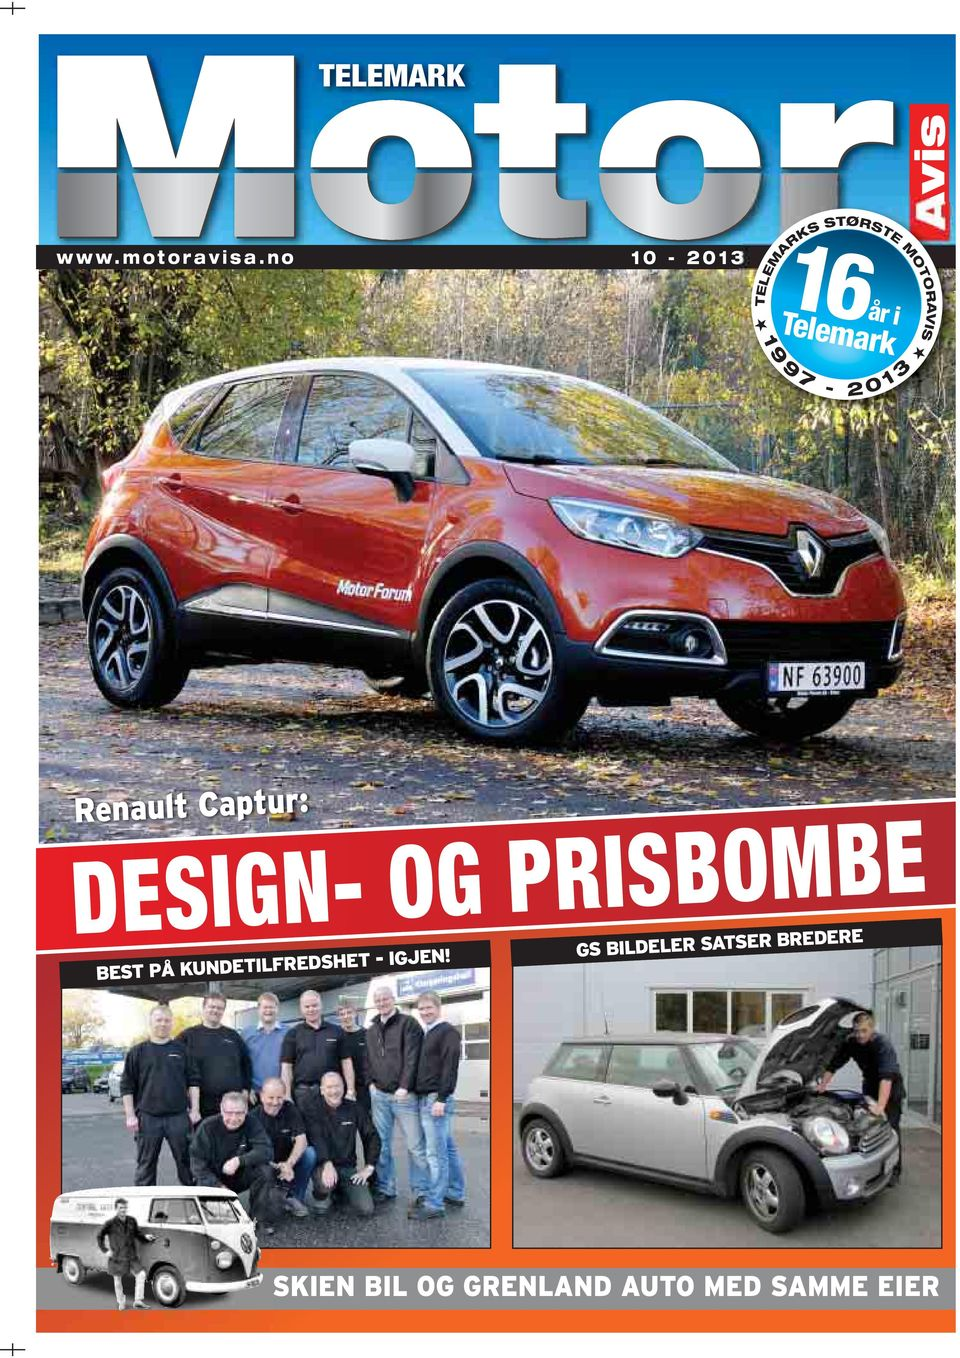 no 10-2013 1 9 9 7-2 0 1 3 Renault Captur: DESIGN- OG